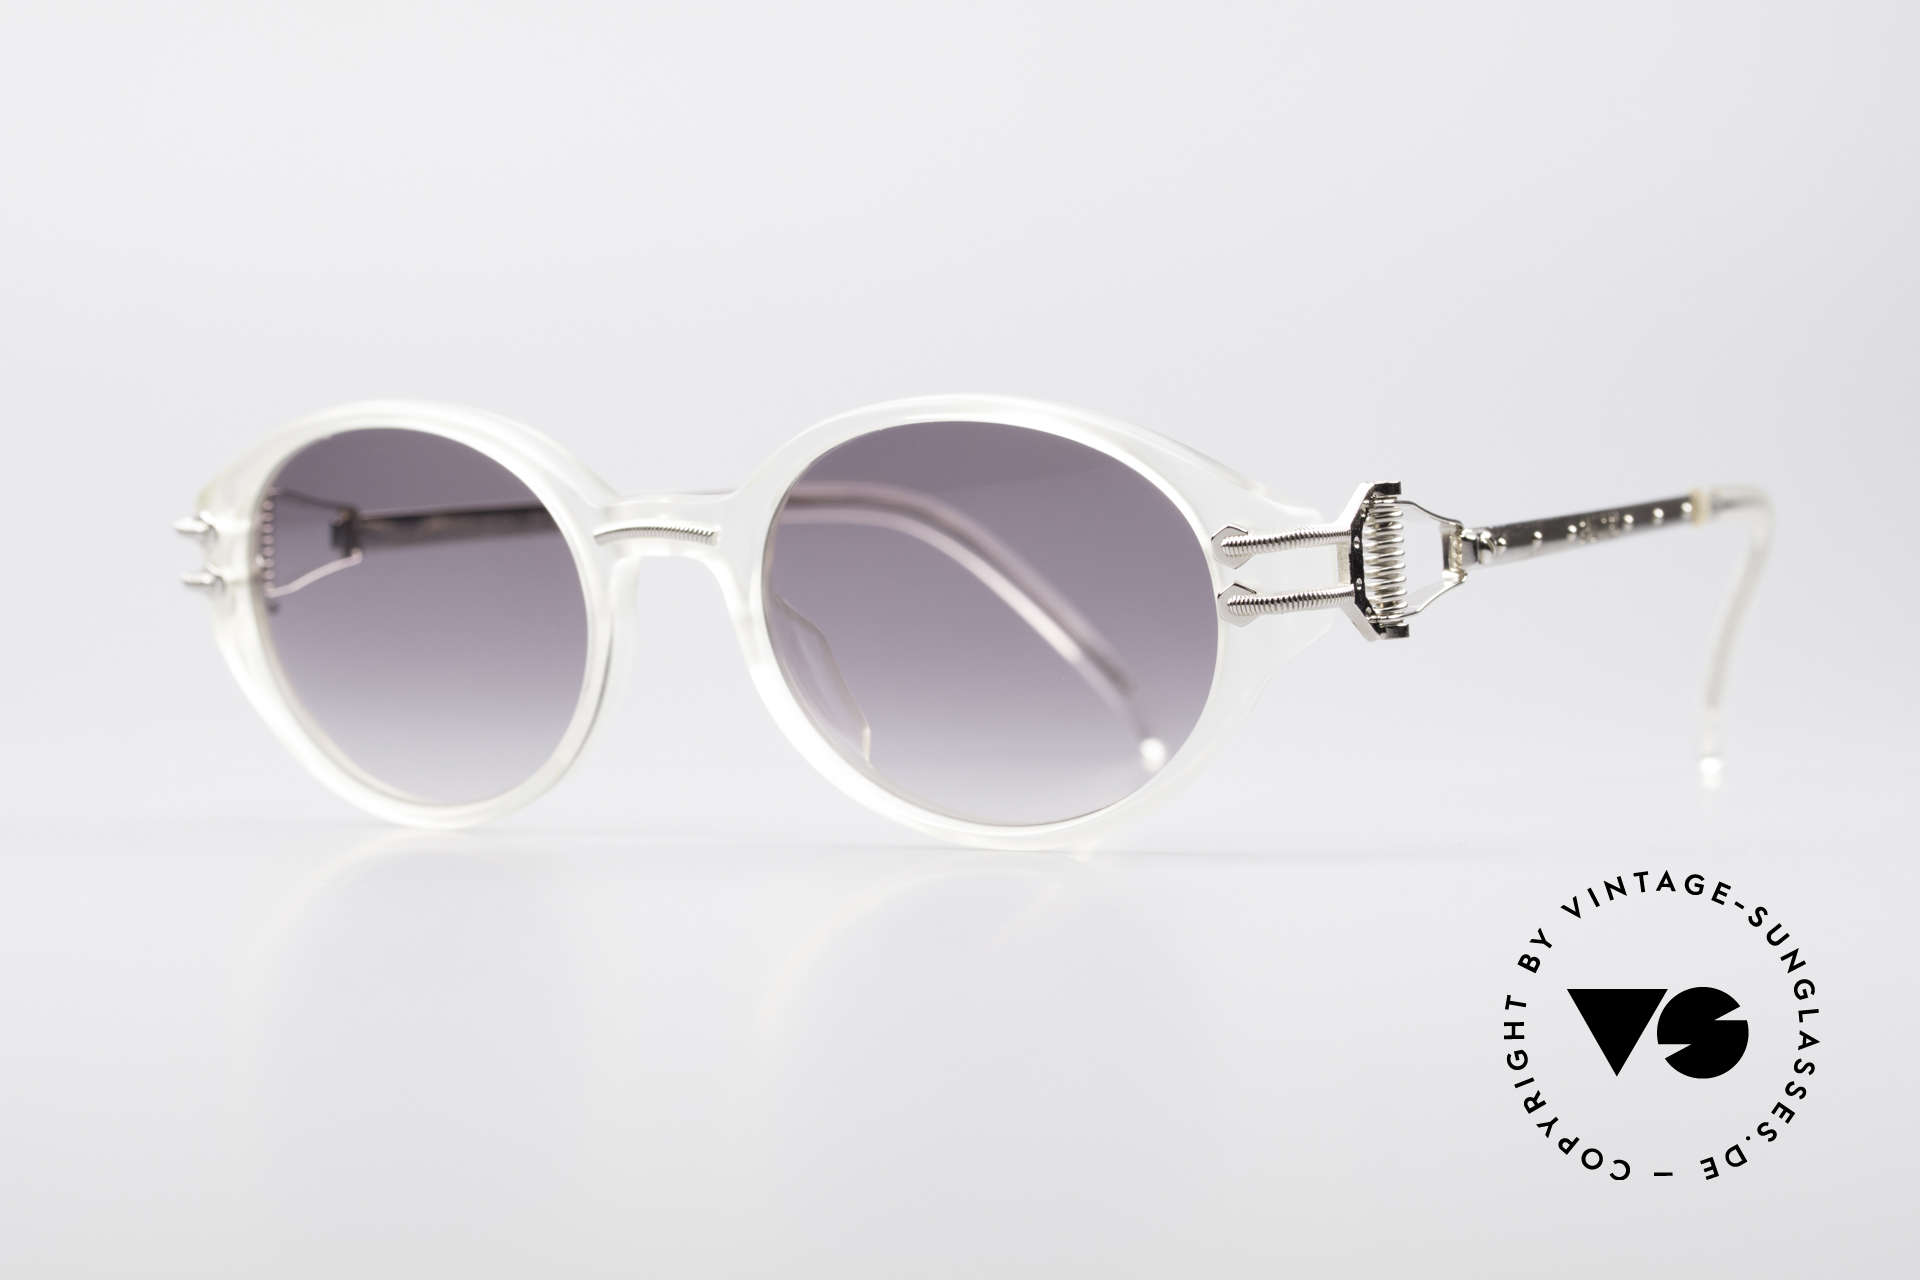 Jean Paul Gaultier 55-5201 90's Steampunk Shades, 'crystal' plastic front with silver metal components, Made for Men and Women